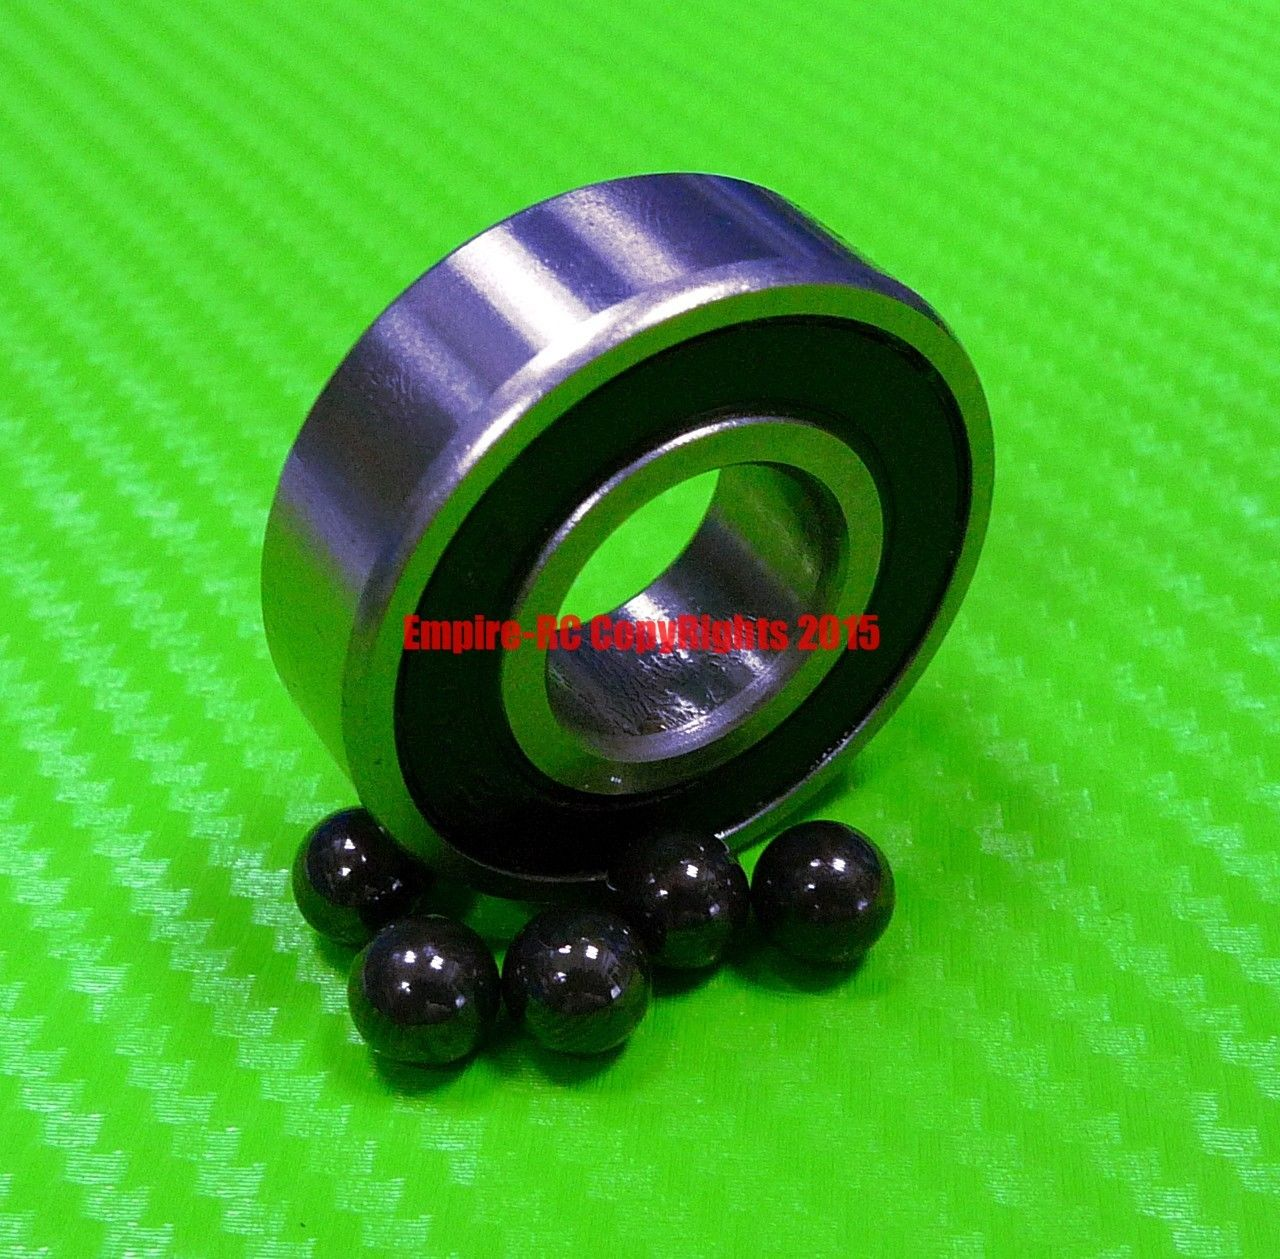 high temperature [QTY 4] (15x32x9 mm) S6002-2RS Stainless HYBRID CERAMIC Ball Bearings BLK 6002RS